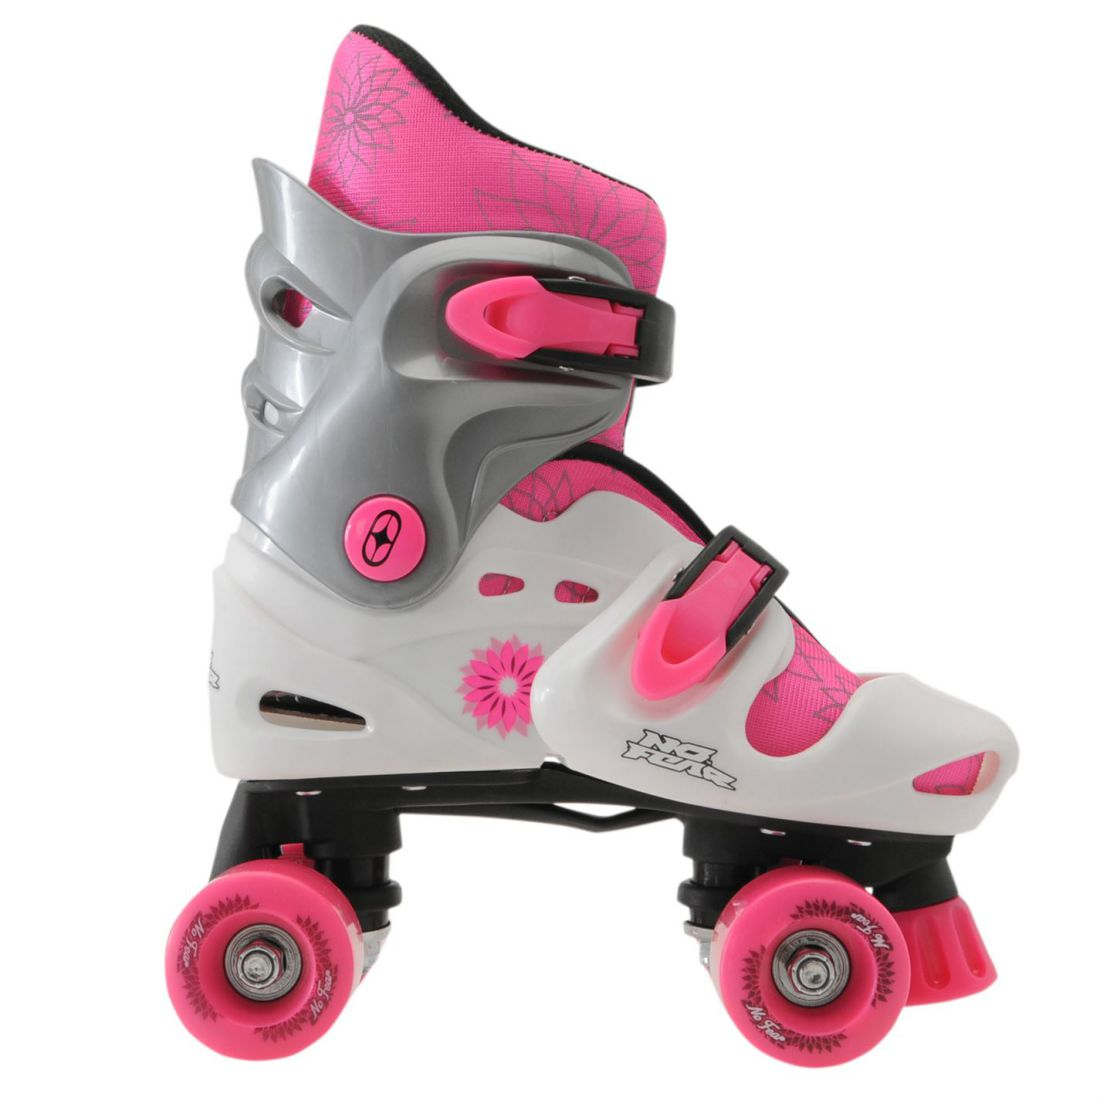 Details about No Fear Quad Skates Rollers Wheeled Trainers Skate Shoes  Girls Childrens 90be0526e